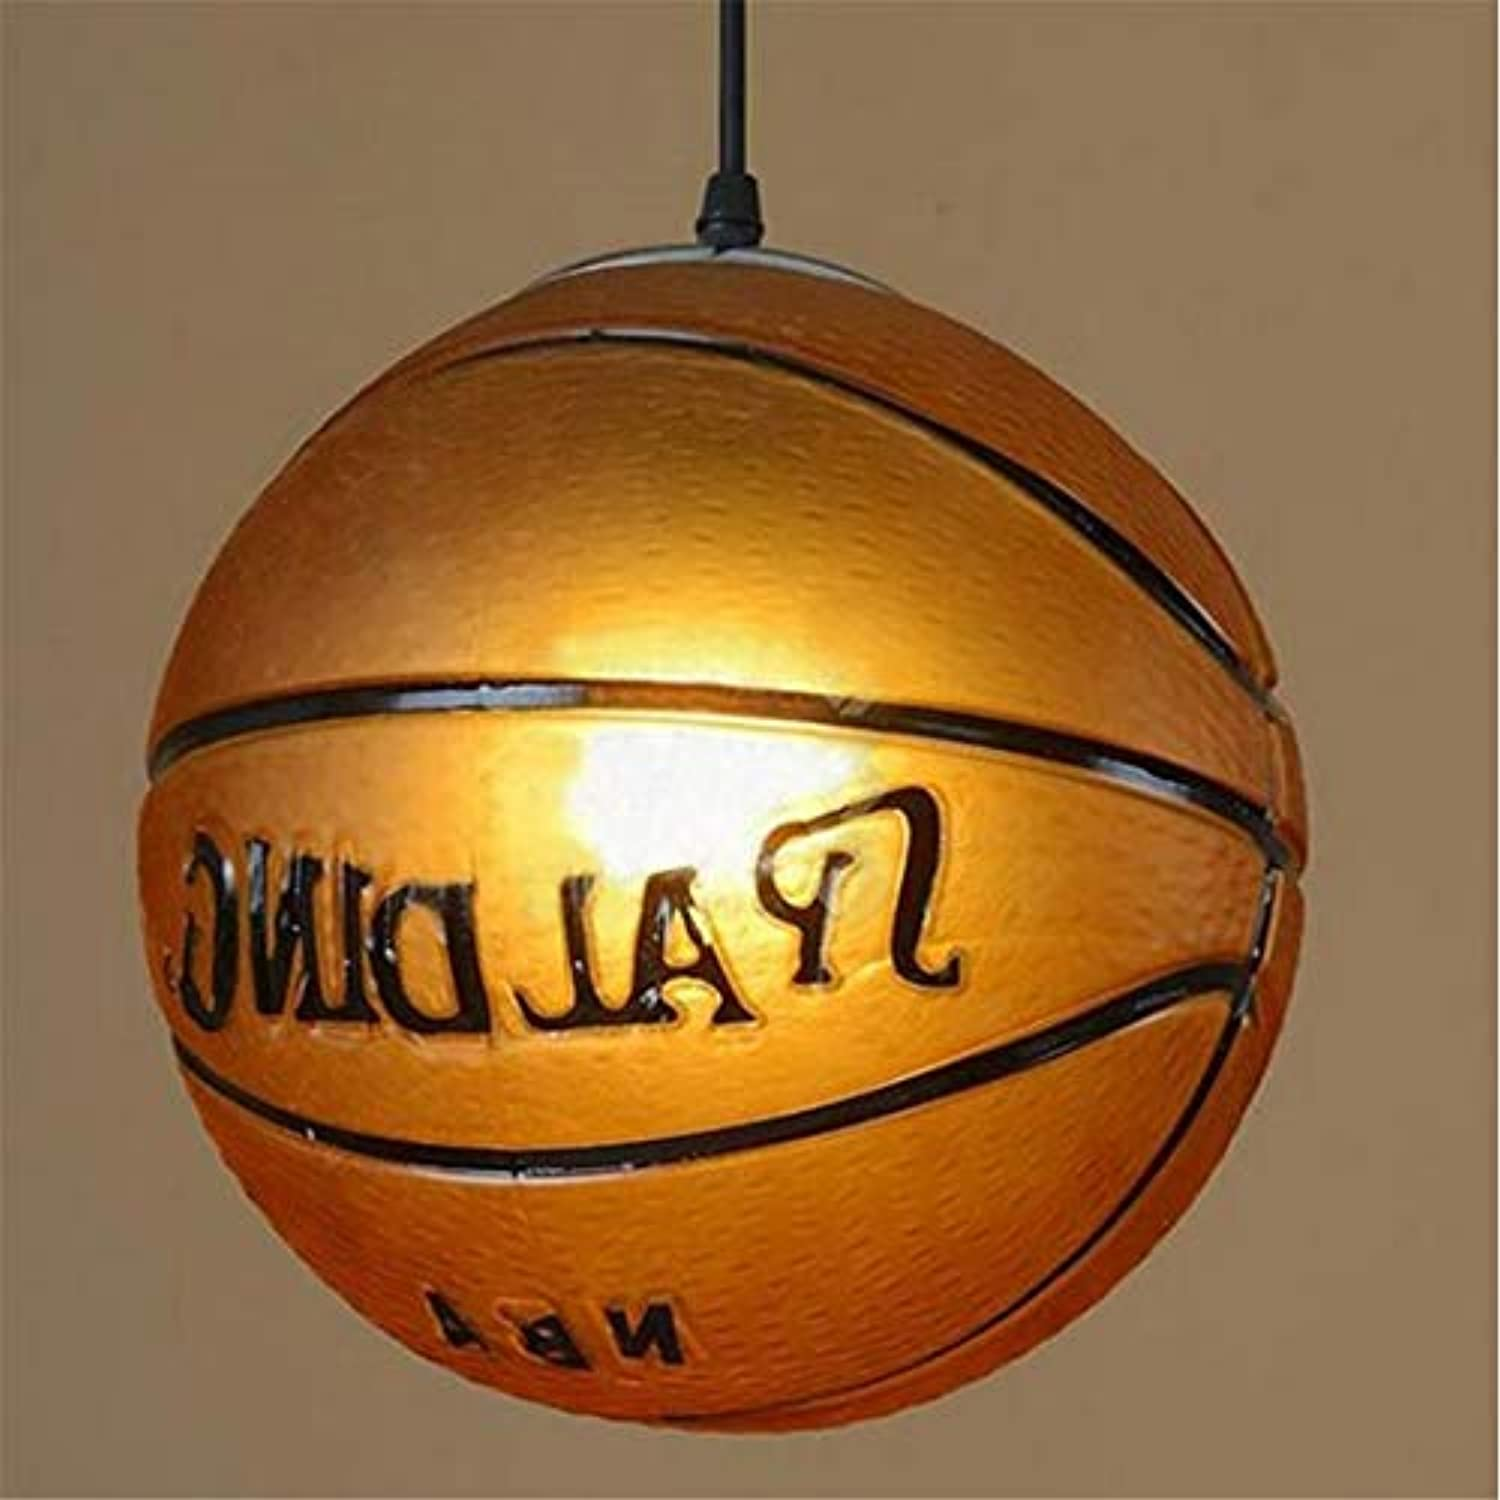 Nachttisch Lampretro Creative Basketbchandelier Lampe Bar Sport Bühne Dekoration Kronleuchter